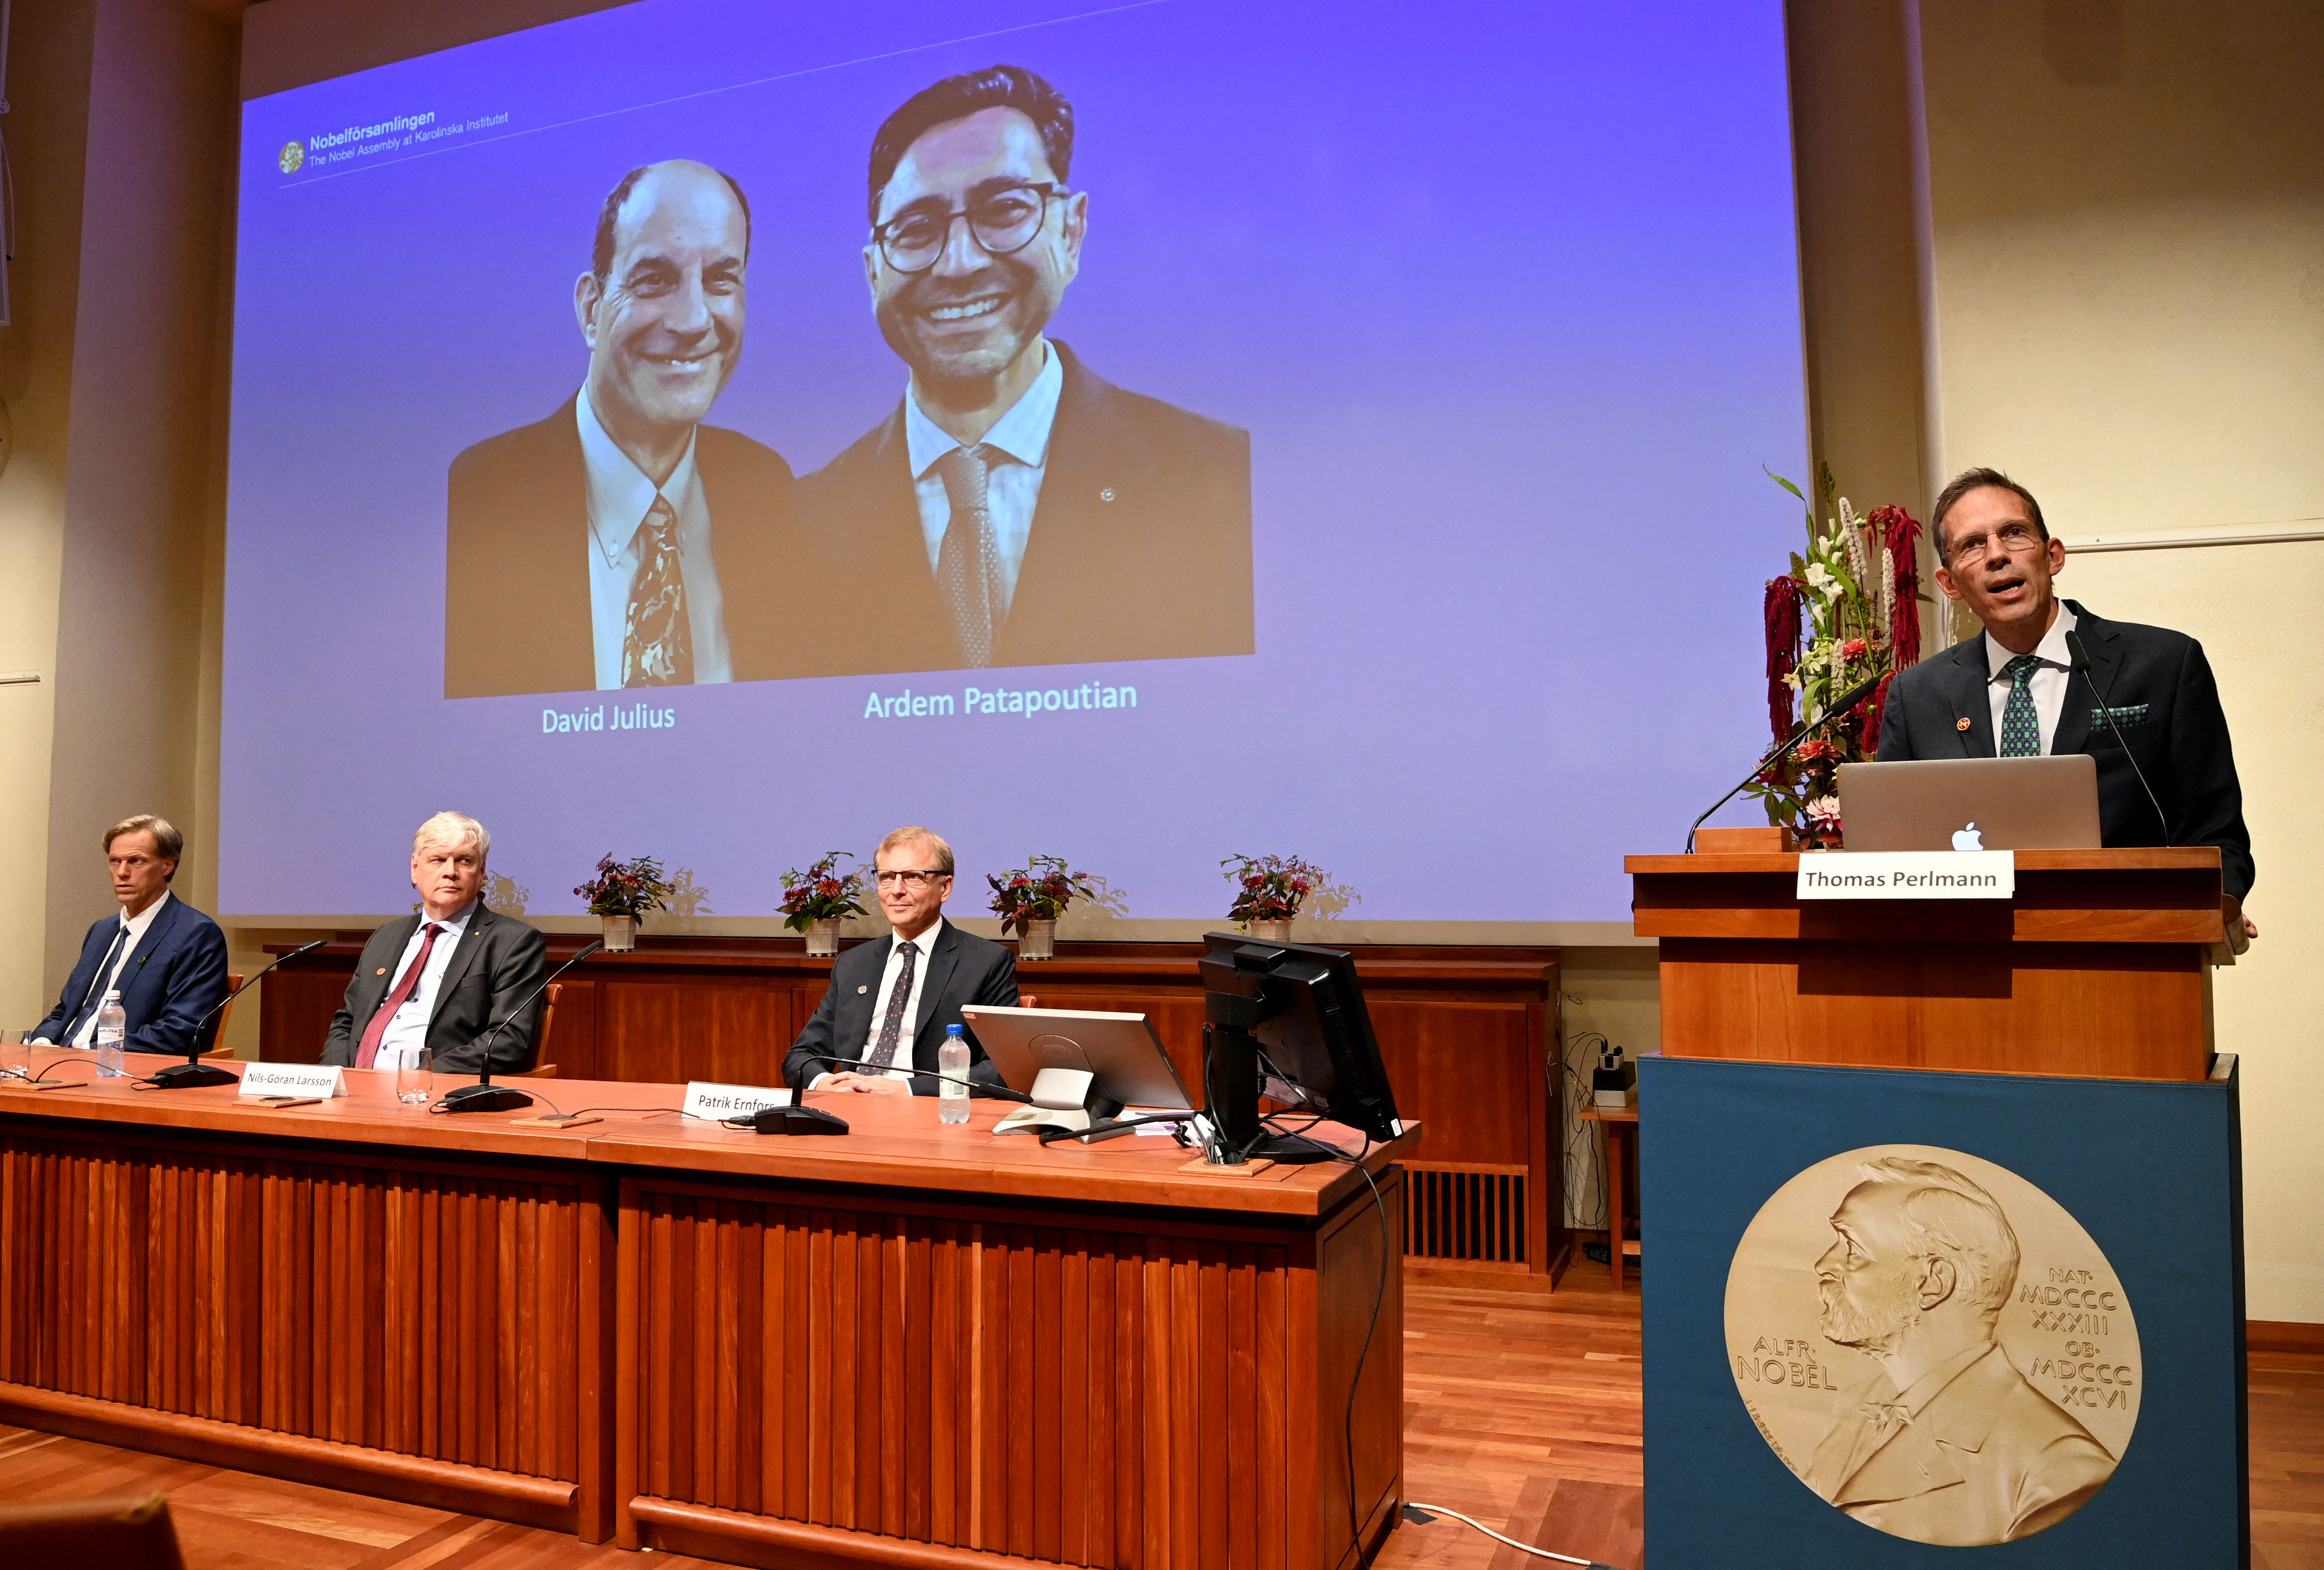 Thomas Perlmann (right), the Secretary of the Nobel Committee, stands next to a screen displaying the winners of the 2021 Nobel Prize in Physiology or Medicine David Julius (left) and Ardem Patapoutian, during a press conference at the Karolinska Institute in Stockholm, Sweden, on October 4, 2021. - US scientists David Julius and Ardem Patapoutian won the Nobel Medicine Prize for discoveries on receptors for temperature and touch. (Photo by JONATHAN NACKSTRAND/AFP via Getty Images)